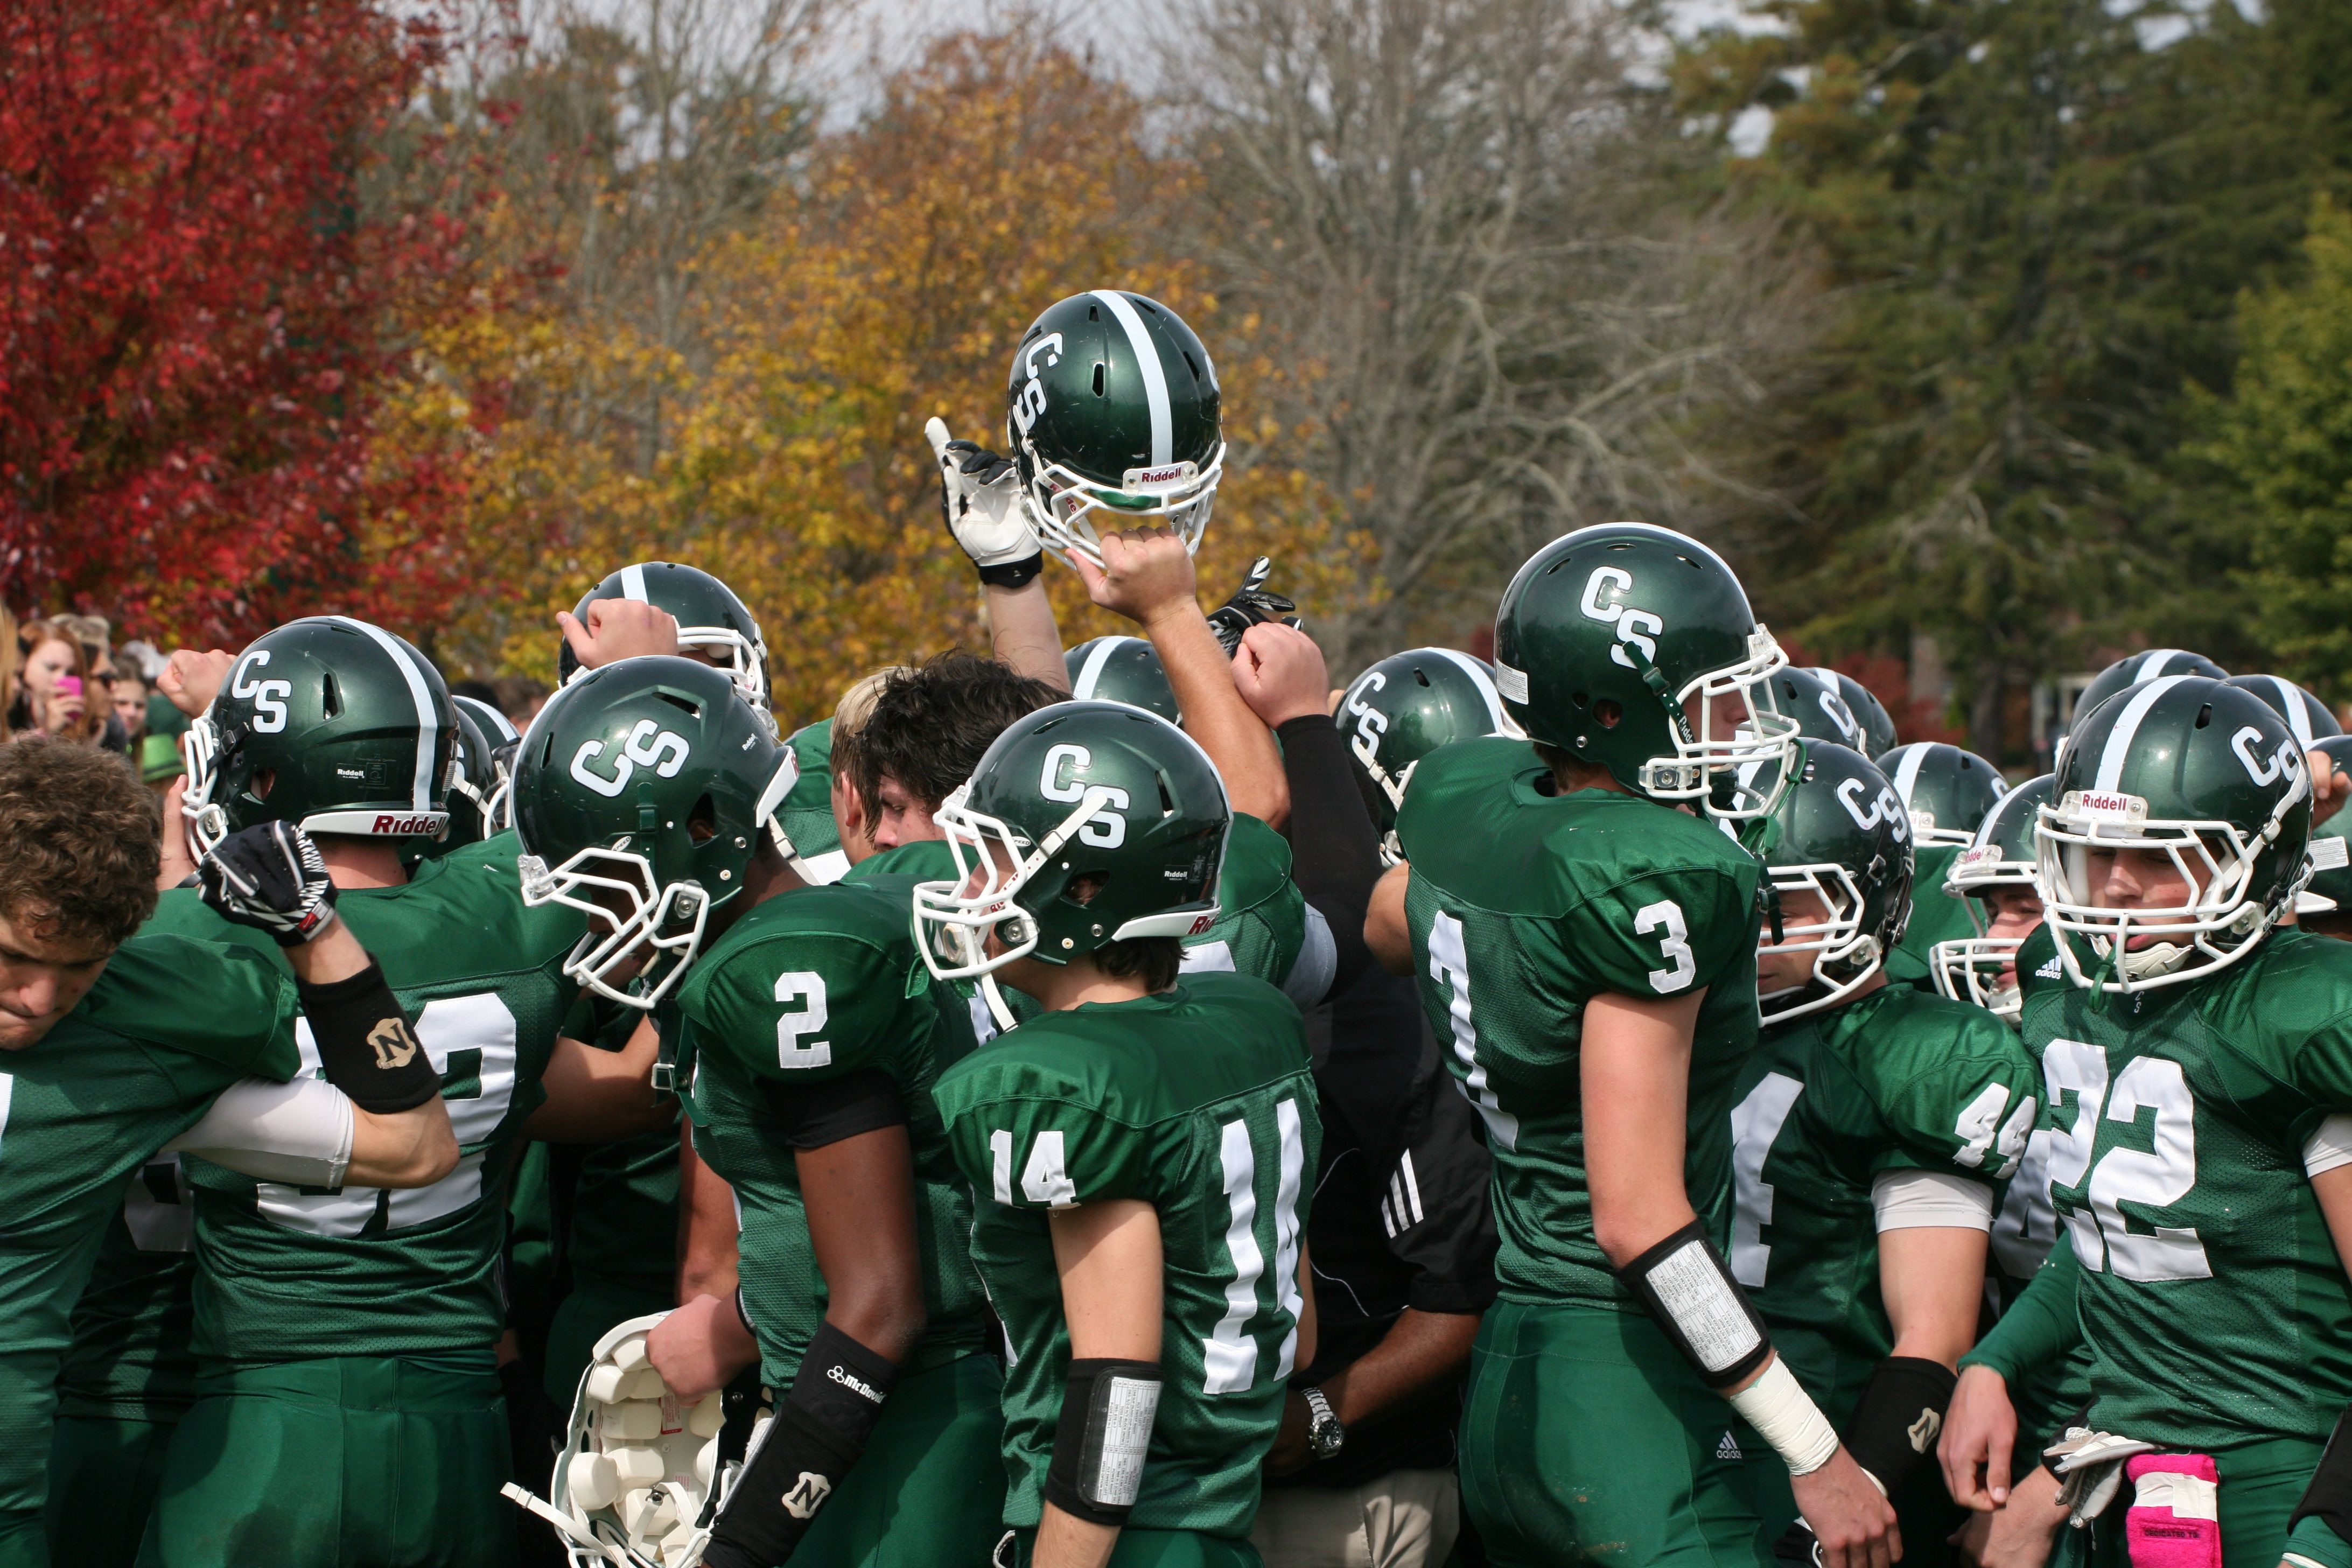 Our varsity football team beat asheville school at the